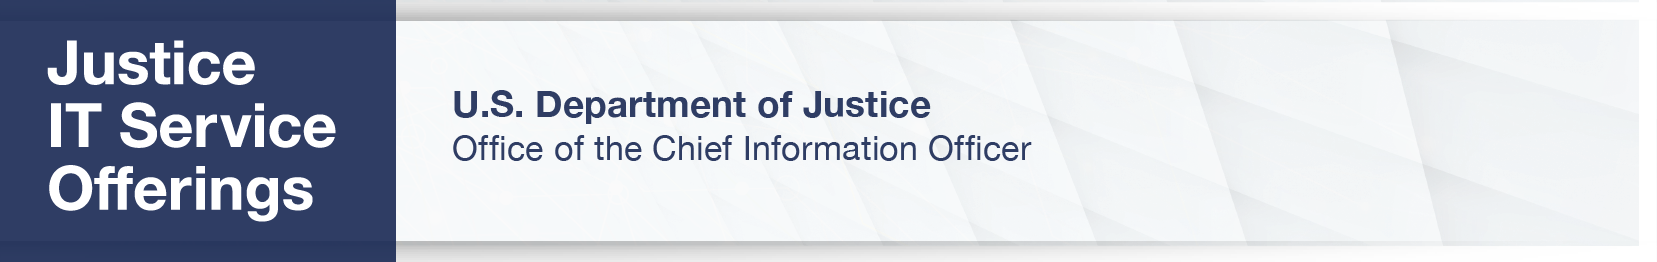 Justice IT Service Offerings; U.S. Department of Justice; Office of the Chief Information Officer